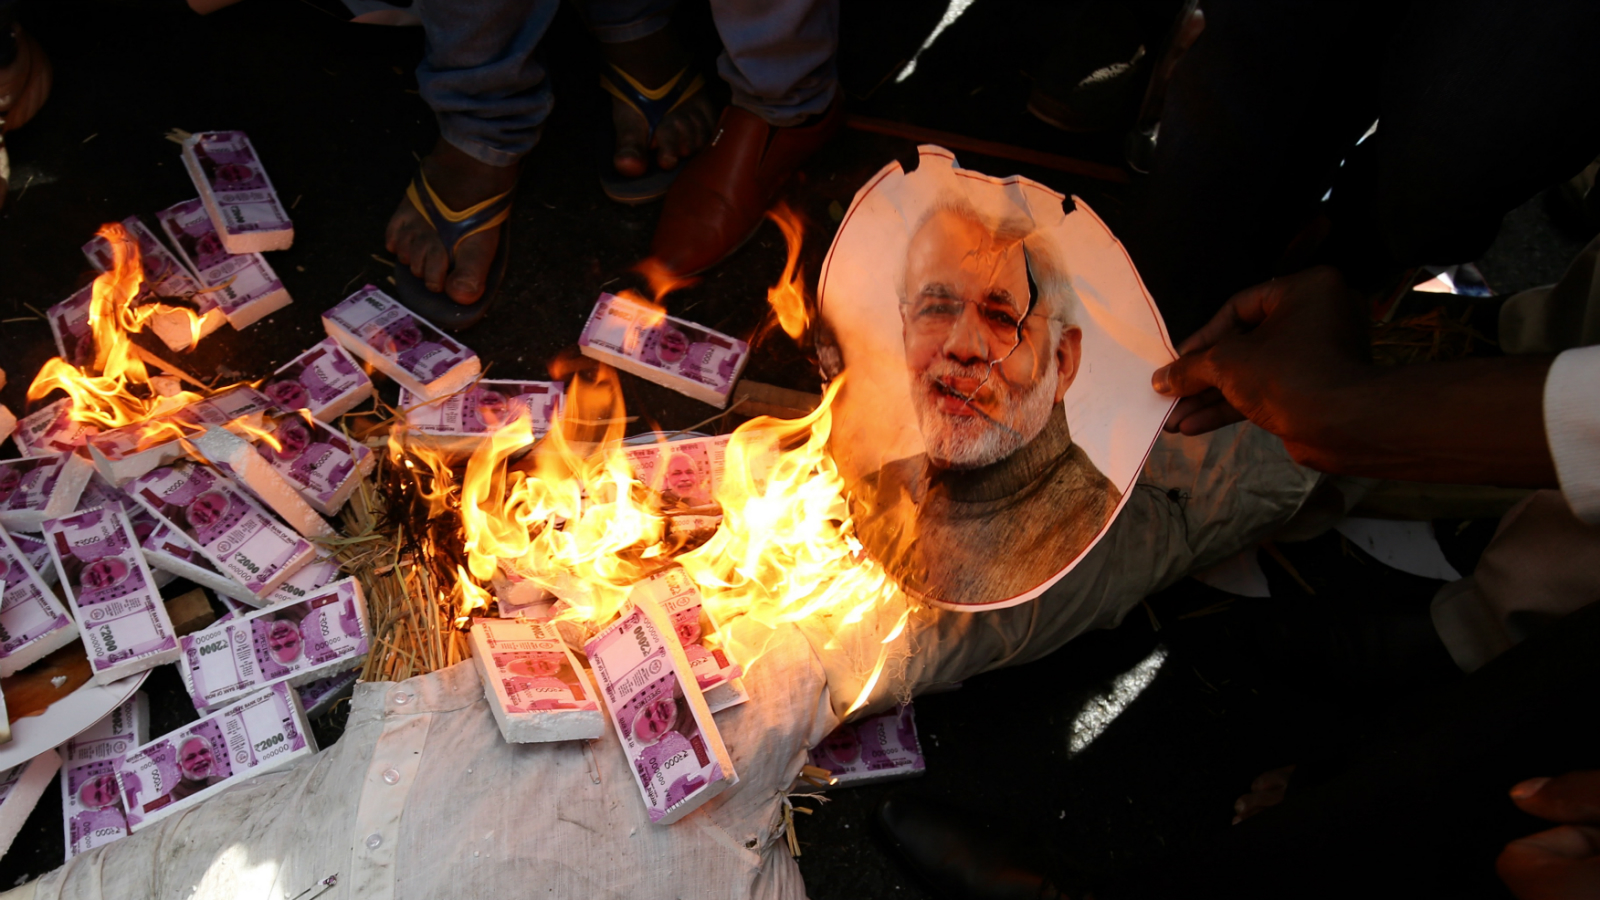 Protesters burn Indian Prime Minister Narendra Modi portrait during an opposition parties, including the Congress party workers, rally in support of 'Jan Aakrosh Diwas' and against the denomination, in Bangalore, India, 28 November 2016. Opposition parties, including the Congress, Left parties, Samajwadi Party and the Trinamool Congress, are observing 'Jan Aakrosh Diwas' on Monday to protest against the Centre's denomination move. Indian Prime Minister Narendra Modi announced the elimination of the 500 and 1,000 rupee bills at midnight on 08 November, for the purpose of fighting against 'black money' and corruption in the country. The decision sparked protests, while storekeepers complained about dwindling sales because many citizens lack the cash to buy the most basic products, as queues get longer at ATMs and banks.